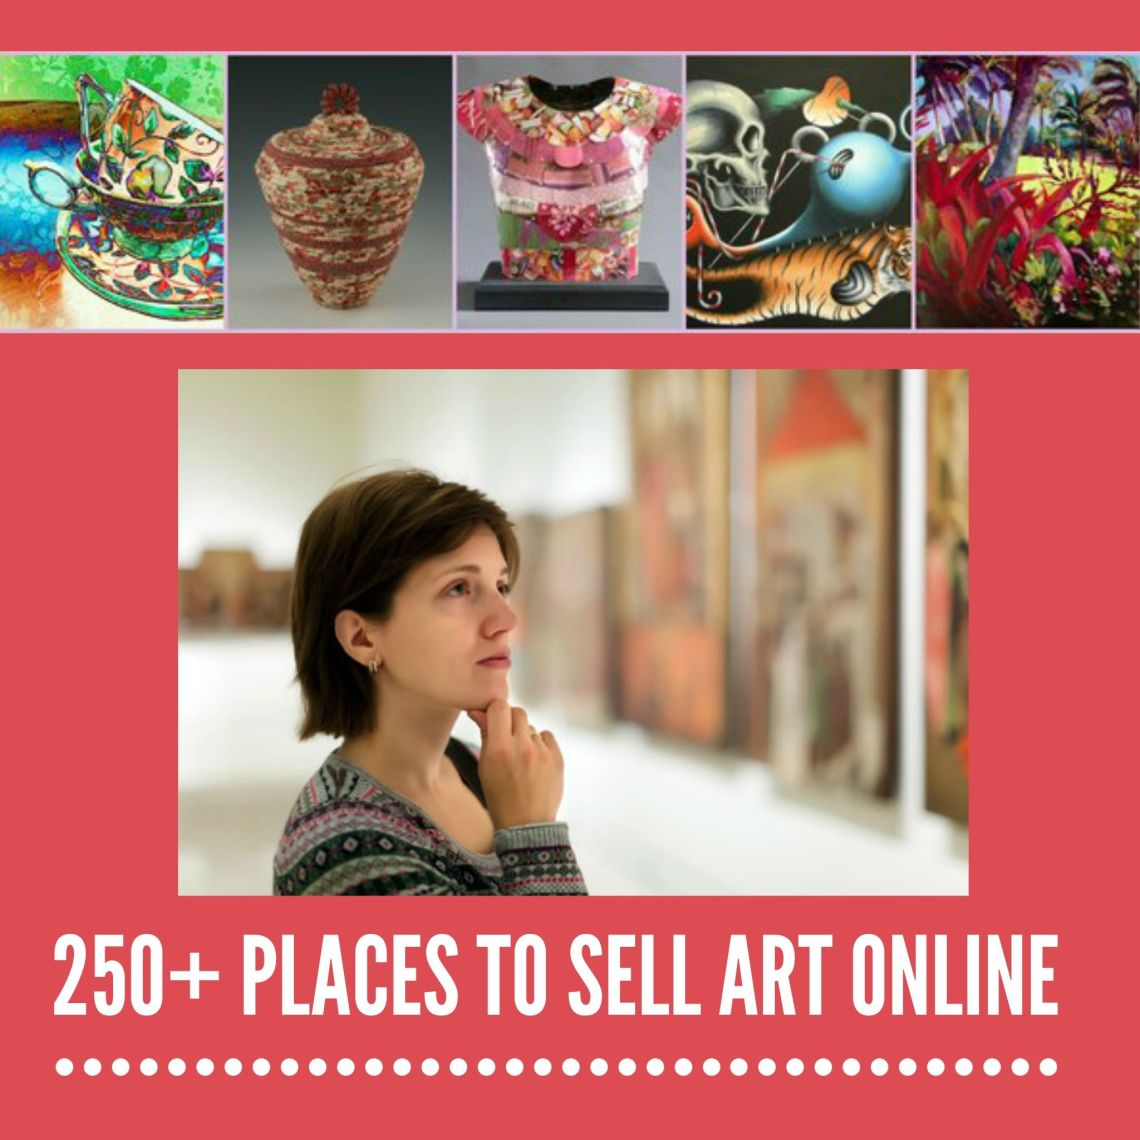 Biggest Directory Of Places To Sell Your Art Or Handmade Work Online Free To Use